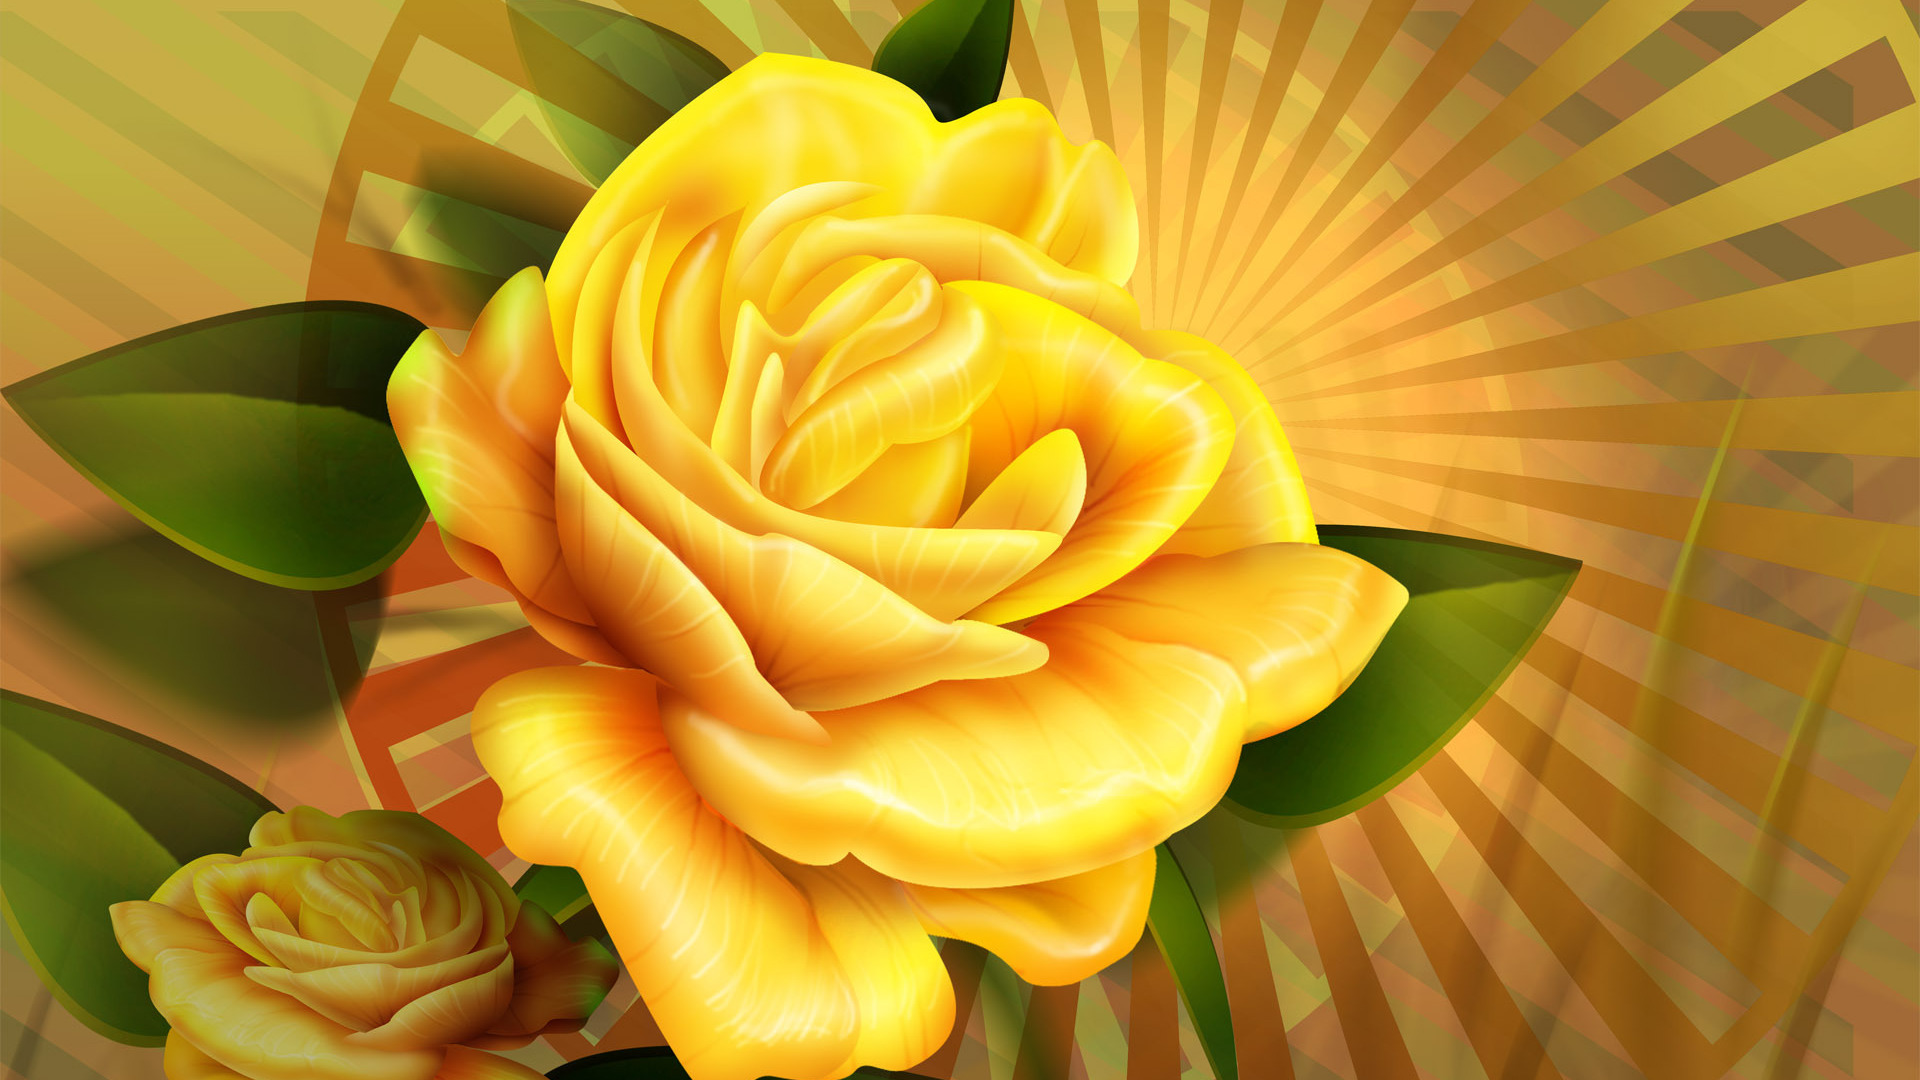 74+] Yellow Roses Wallpaper on WallpaperSafari